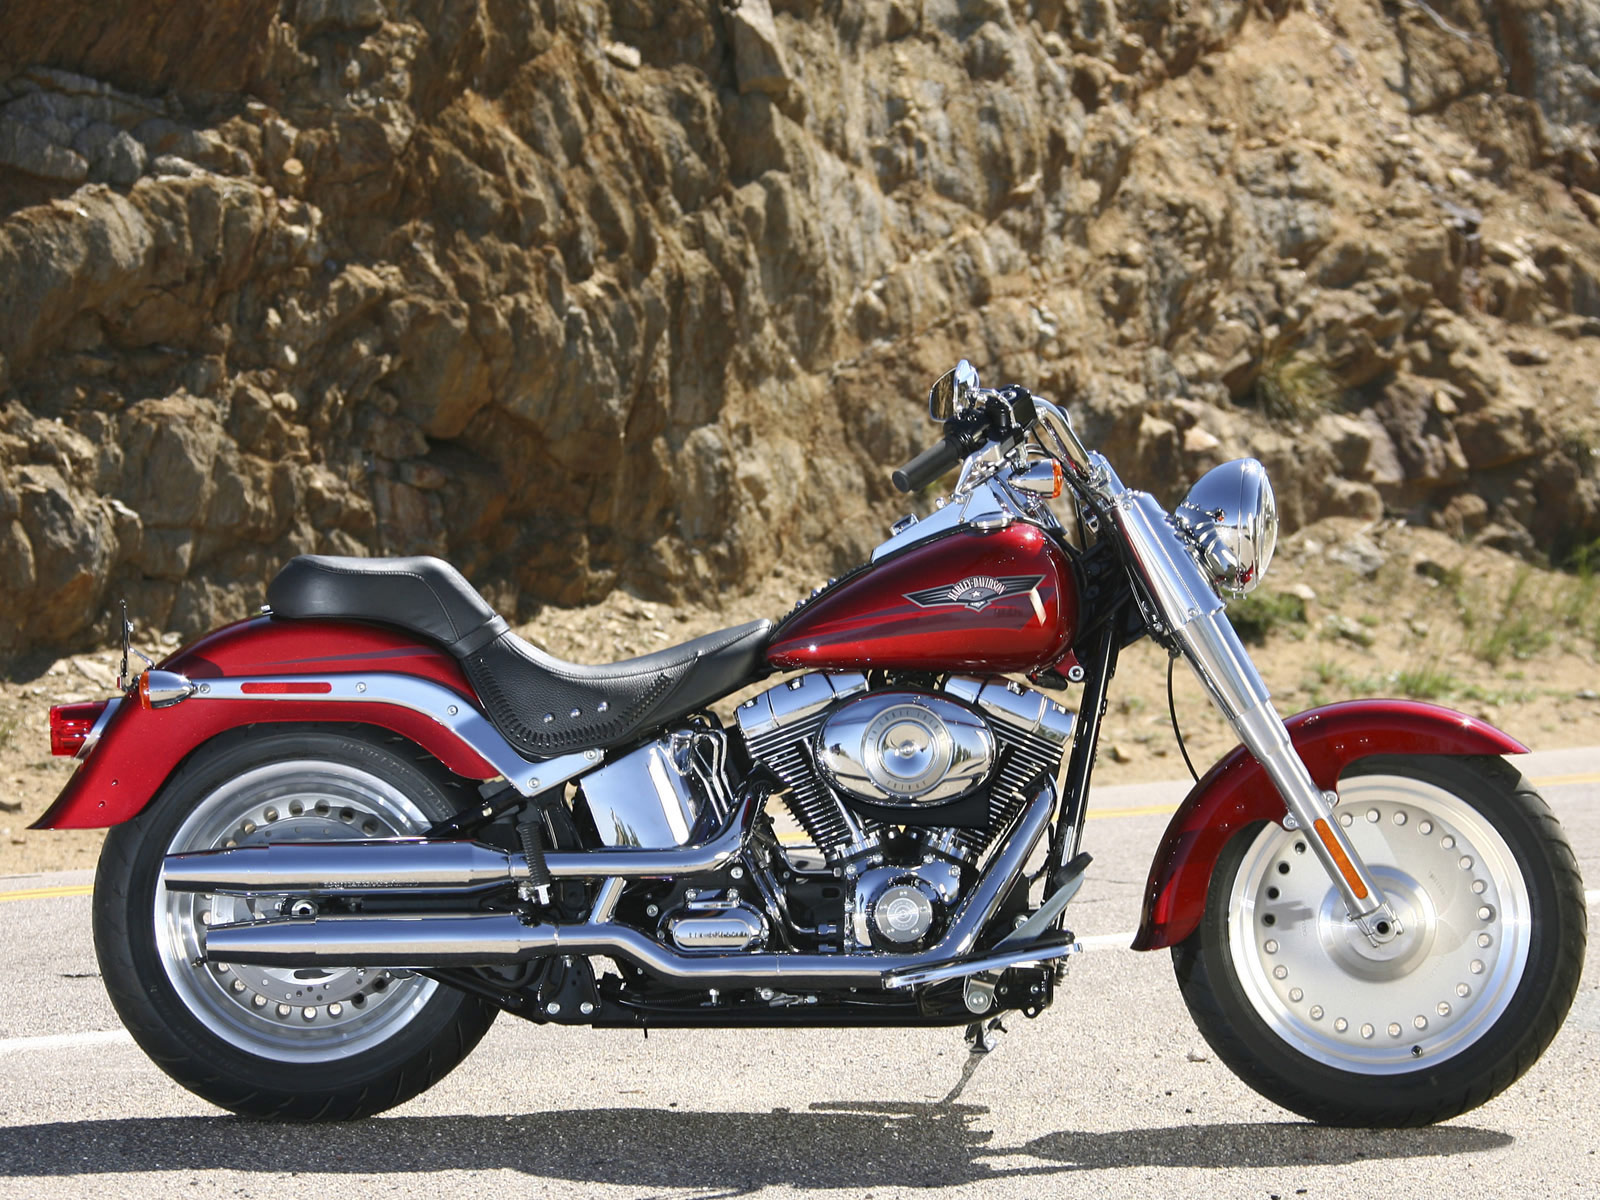 flstf softail fat boy 2008 harley davidson pictures. Black Bedroom Furniture Sets. Home Design Ideas